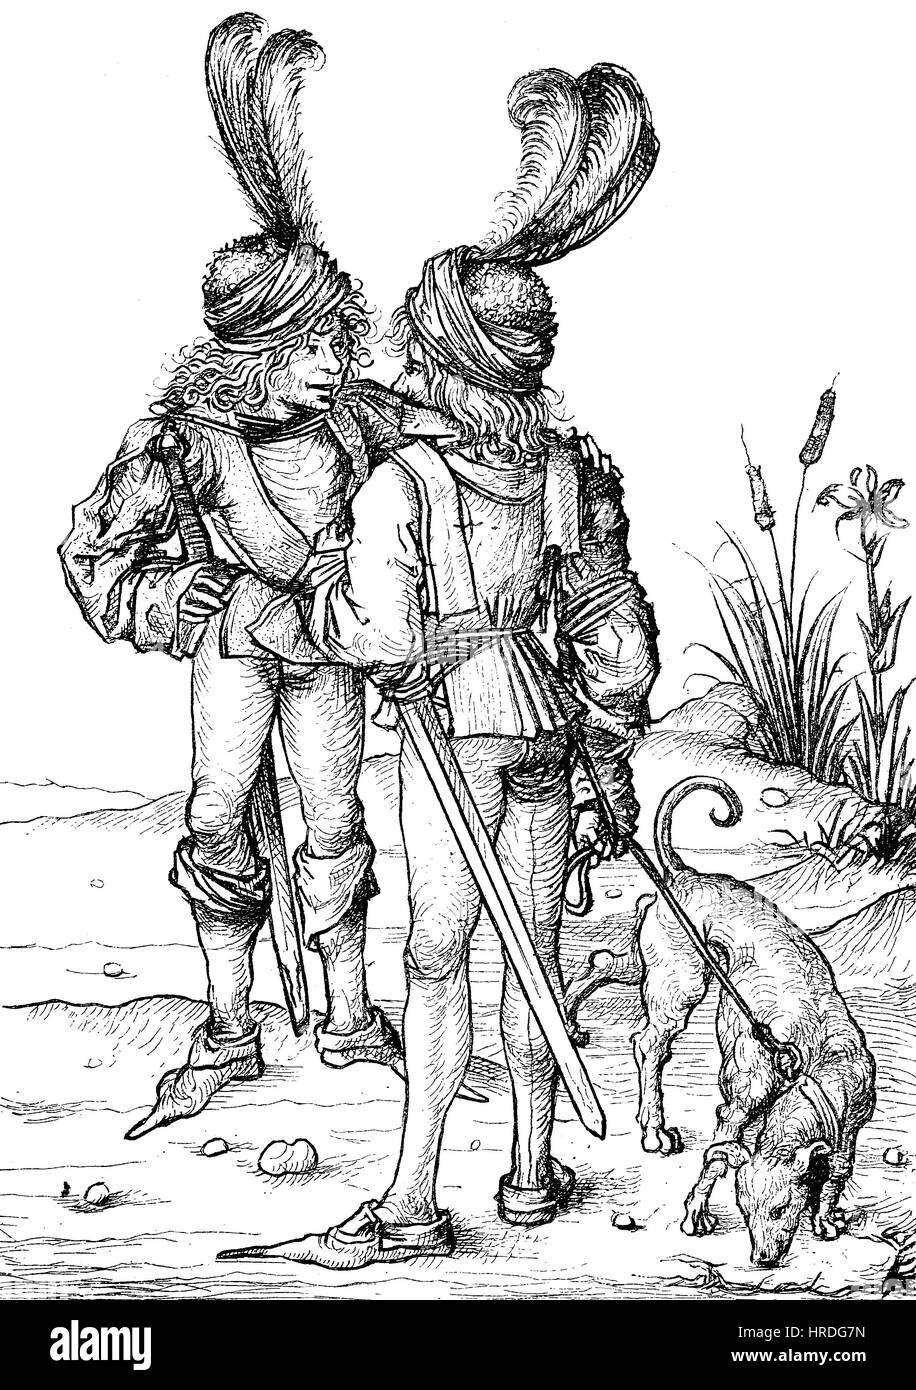 Young, German noble persons with dog in the 15th century, facsimile of copper engravings, reproduction of an woodcut - Stock Image